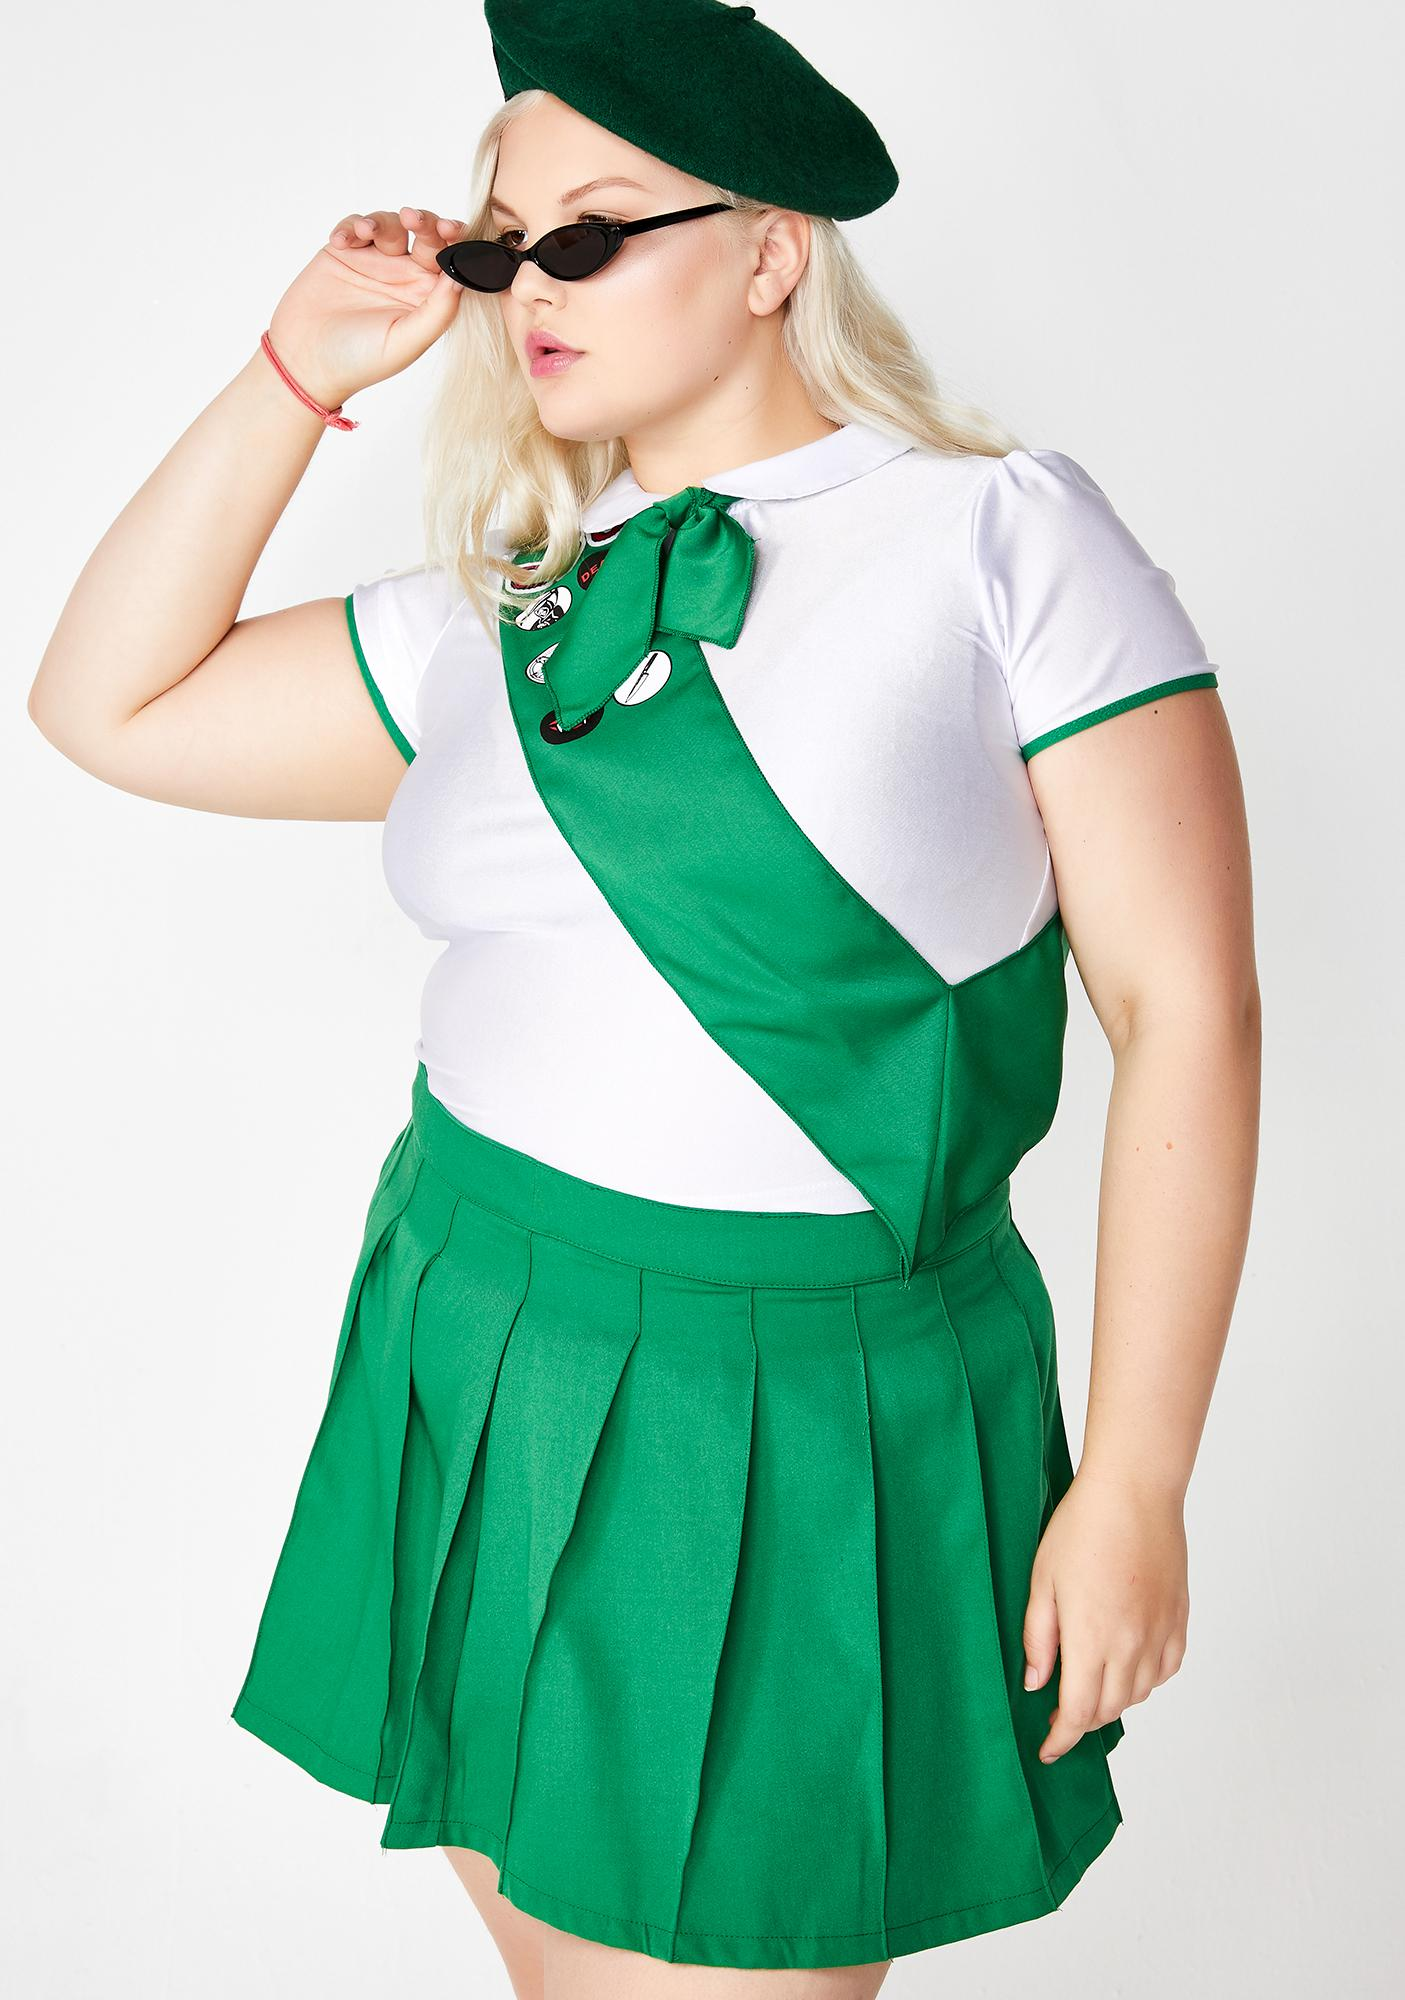 Where to Find Plus Size Halloween Costumes